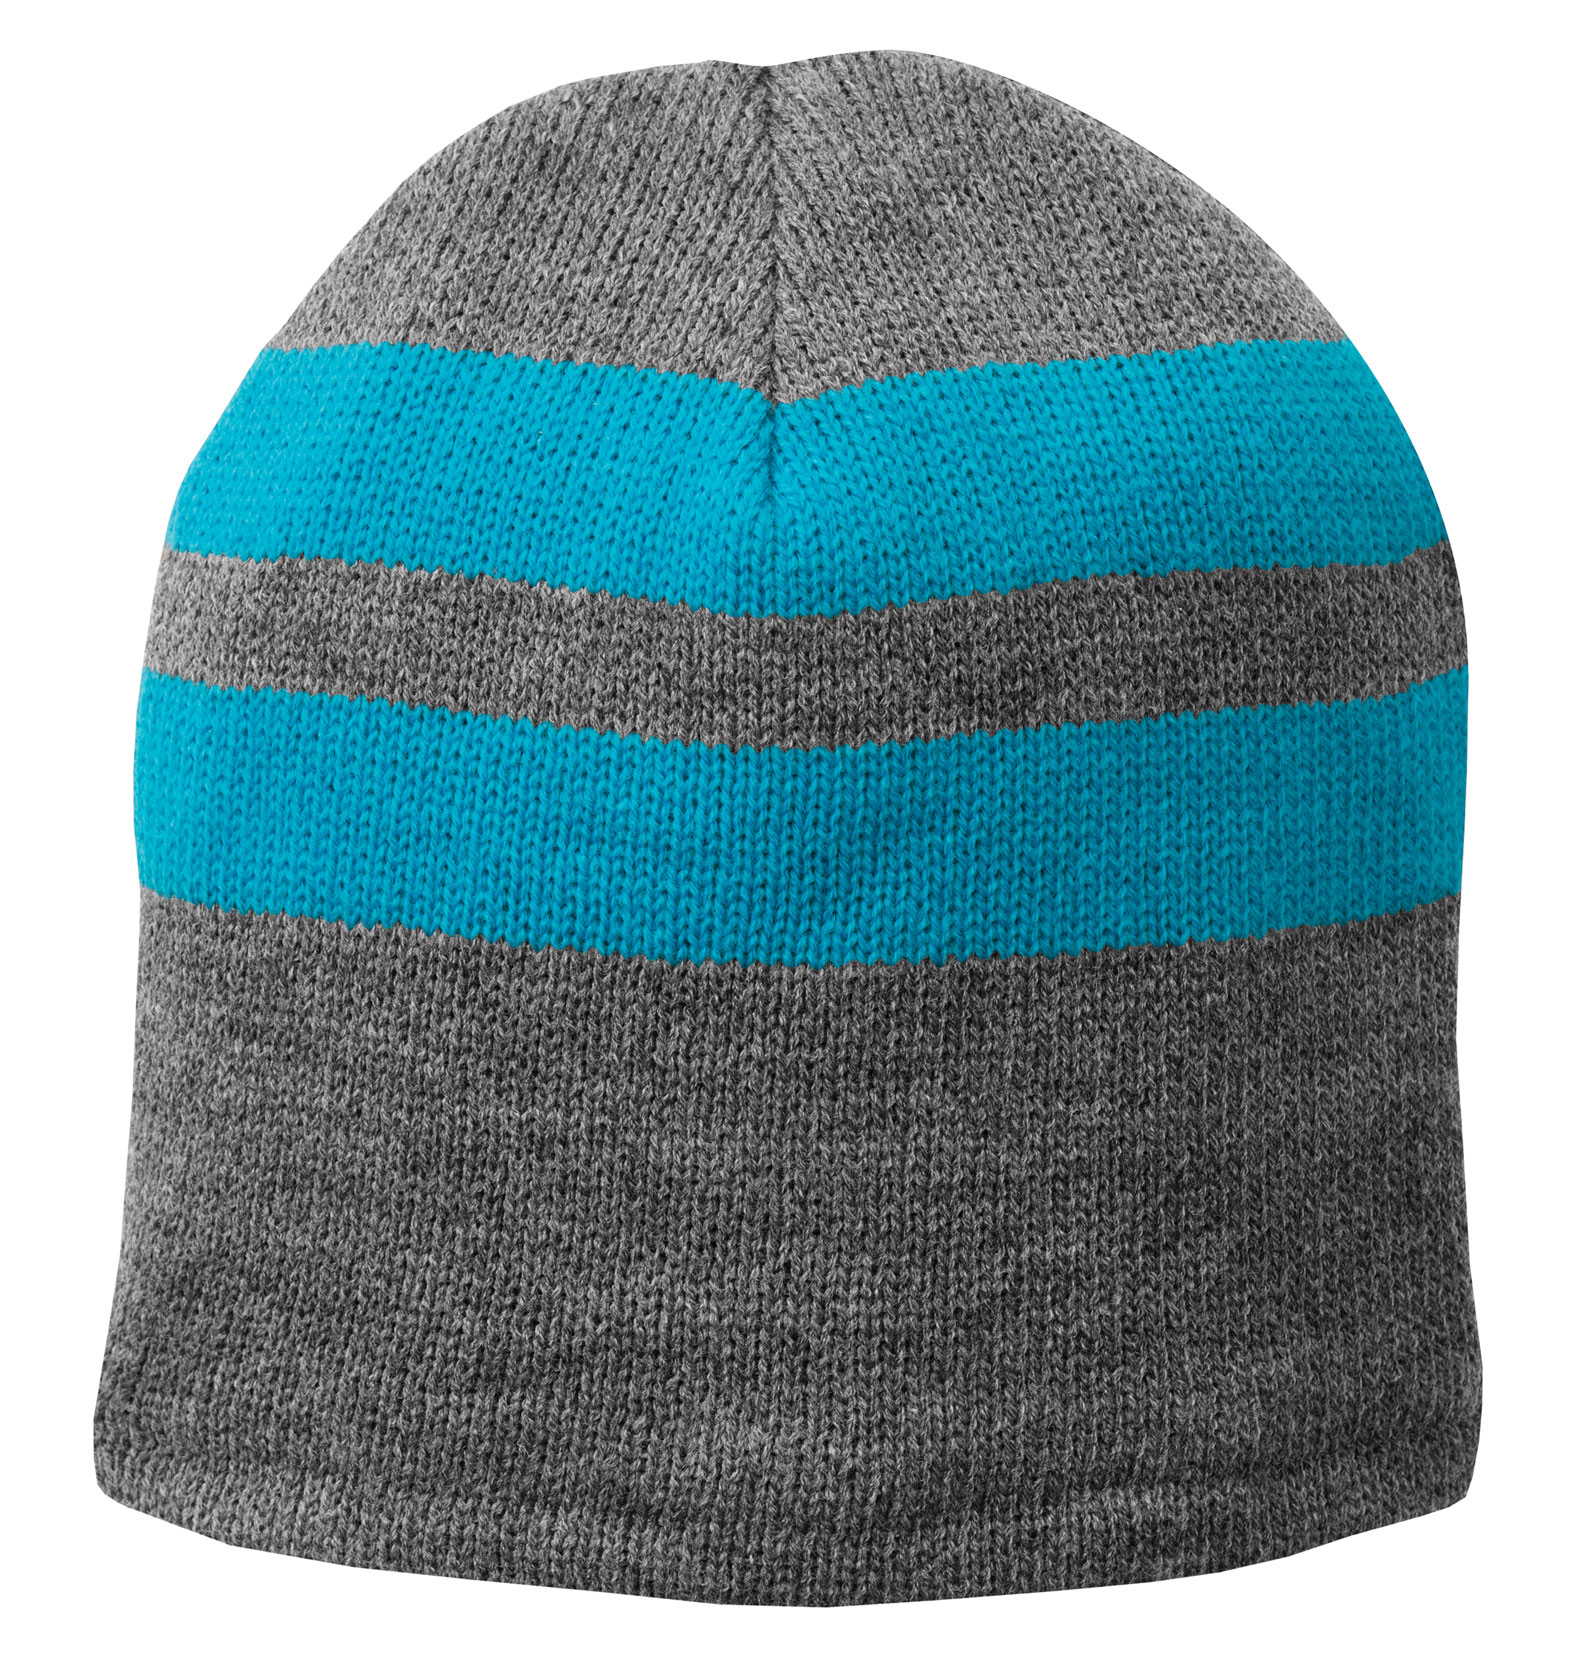 Fleece-Lined Striped Beanie Cap